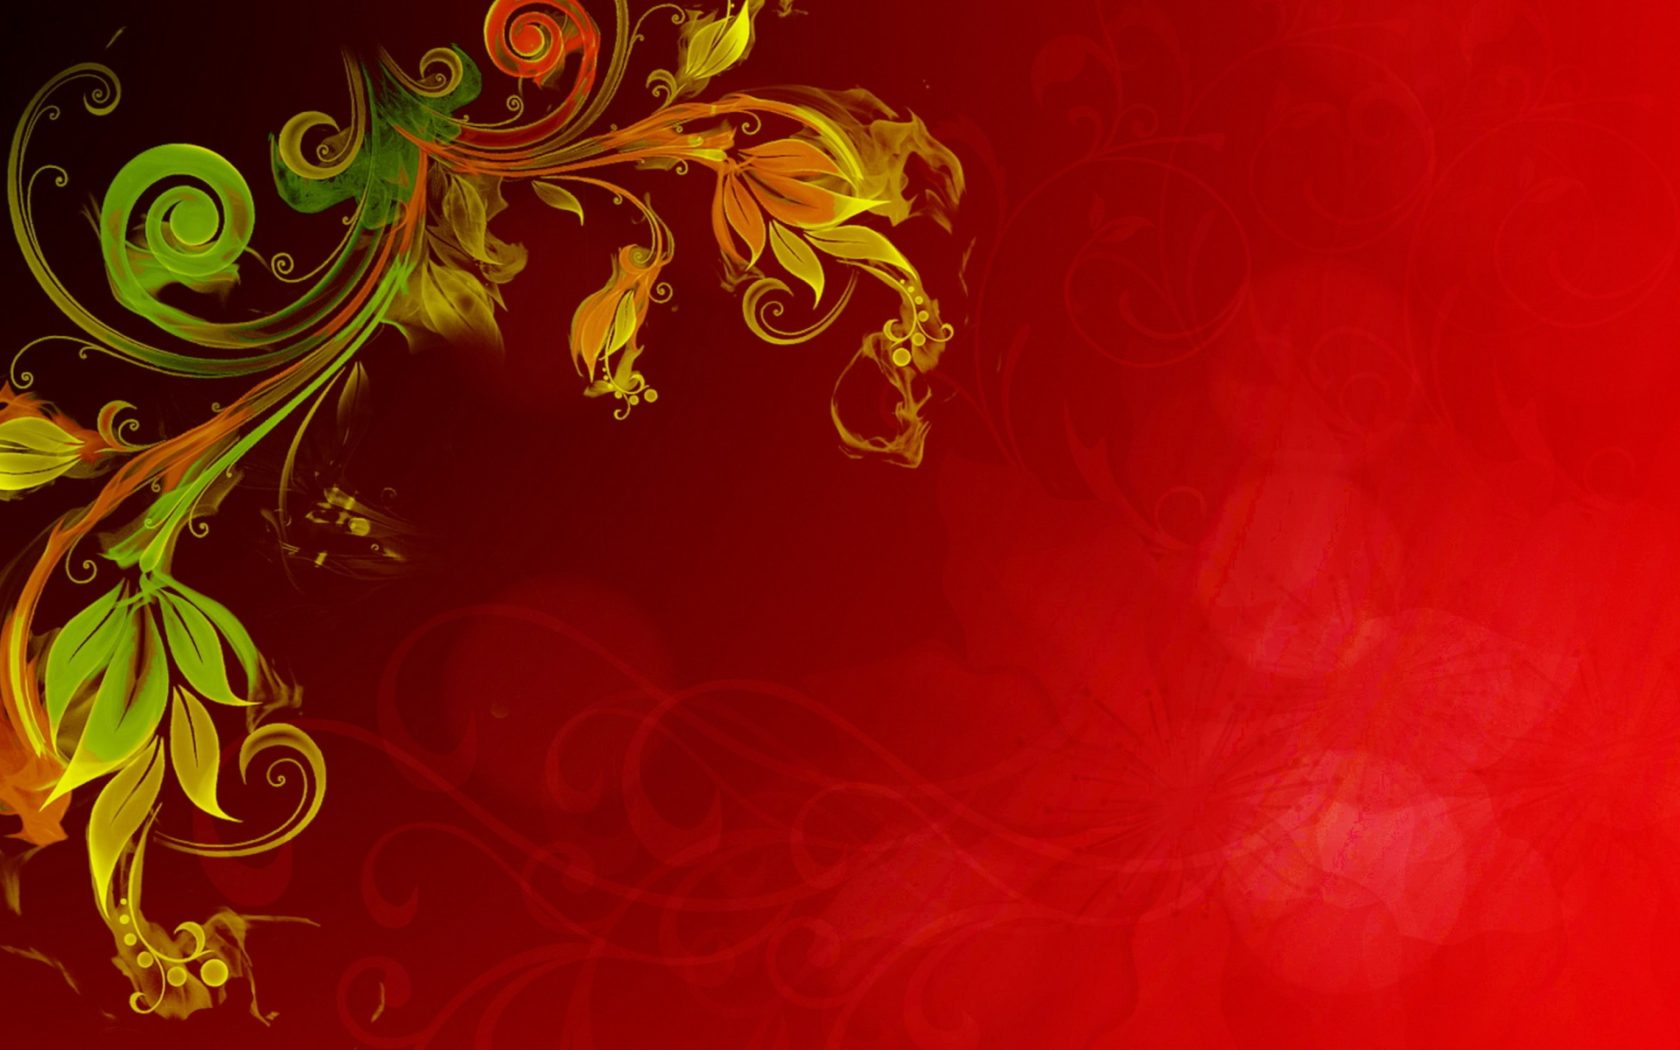 Free Fall Wallpaper For Iphone 5 Floral Vector Red Background Hd Wallpapers13 Com